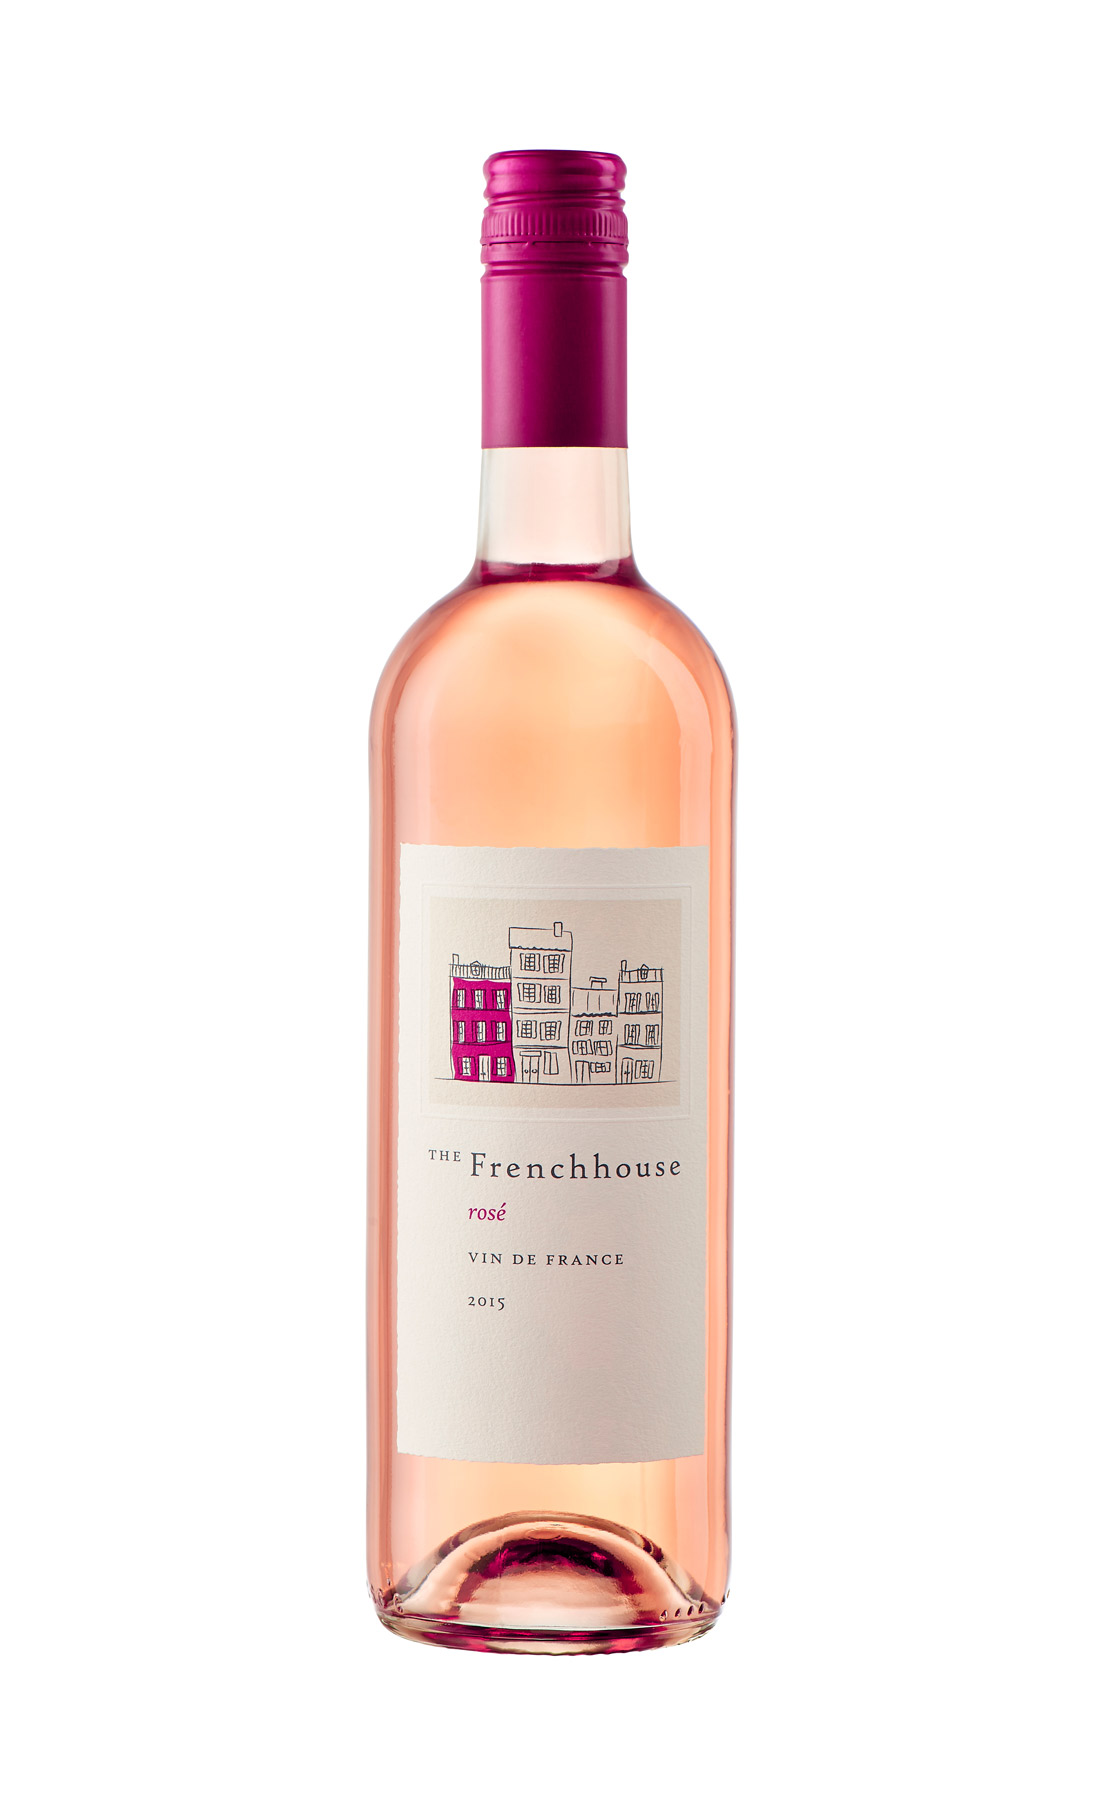 The Frenchhouse Rose